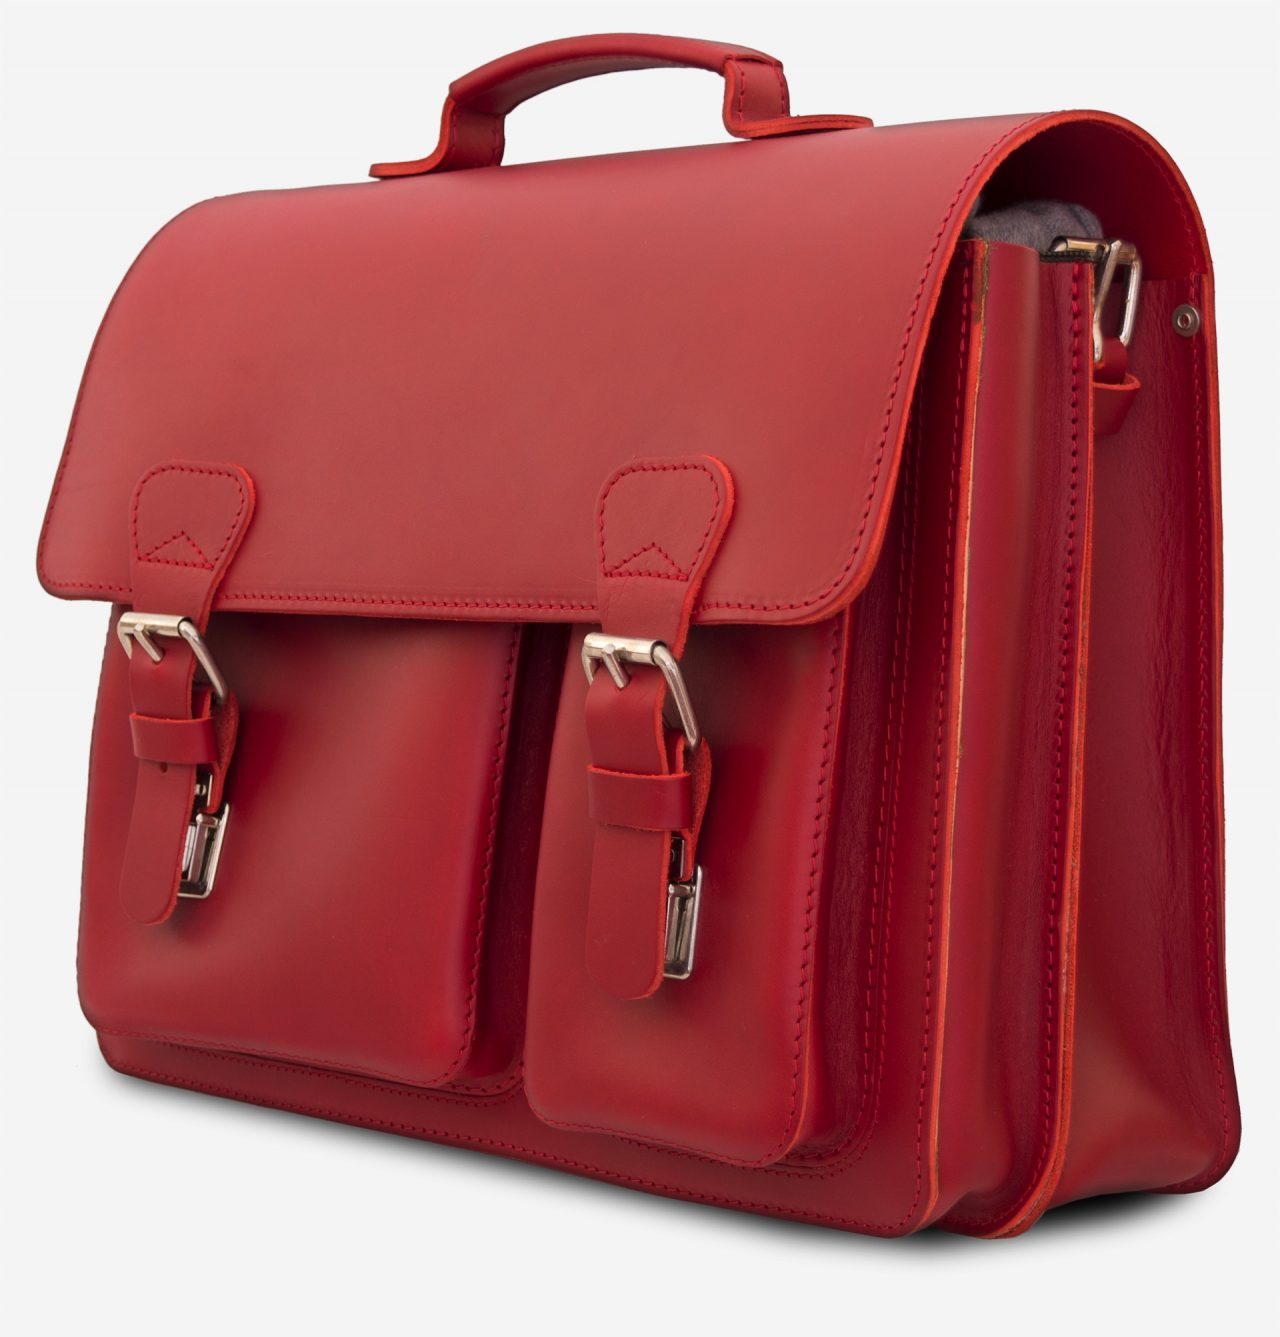 Side view of red leather satchel briefcase bag with 2 gussets and asymmetric front pockets for women - 152137.